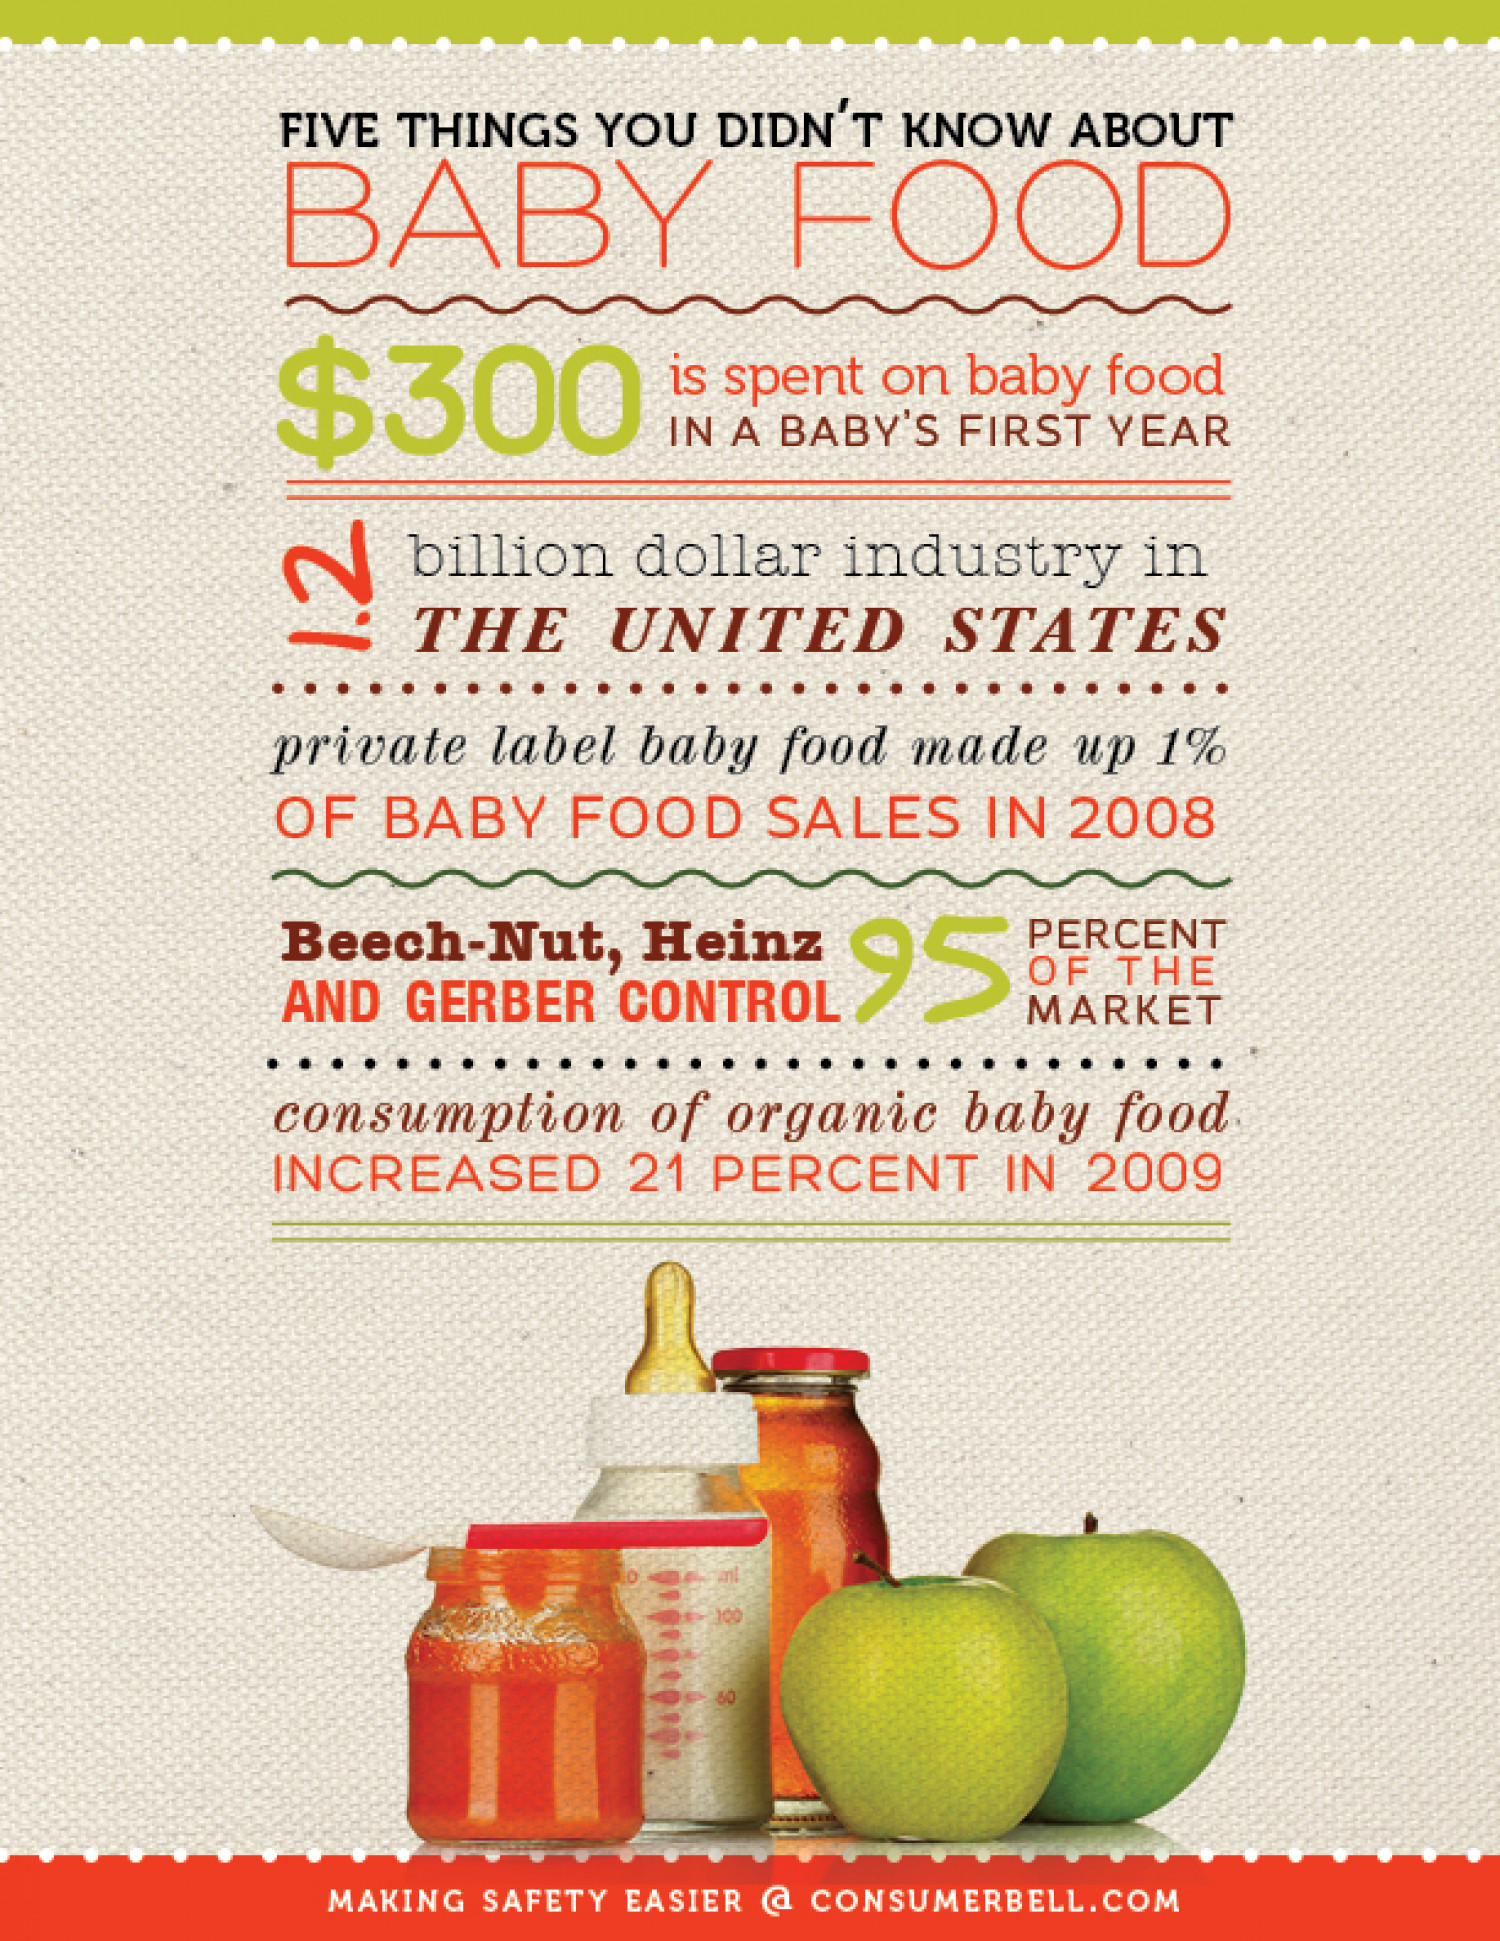 Five Things You Didn't Know About Baby Food Infographic